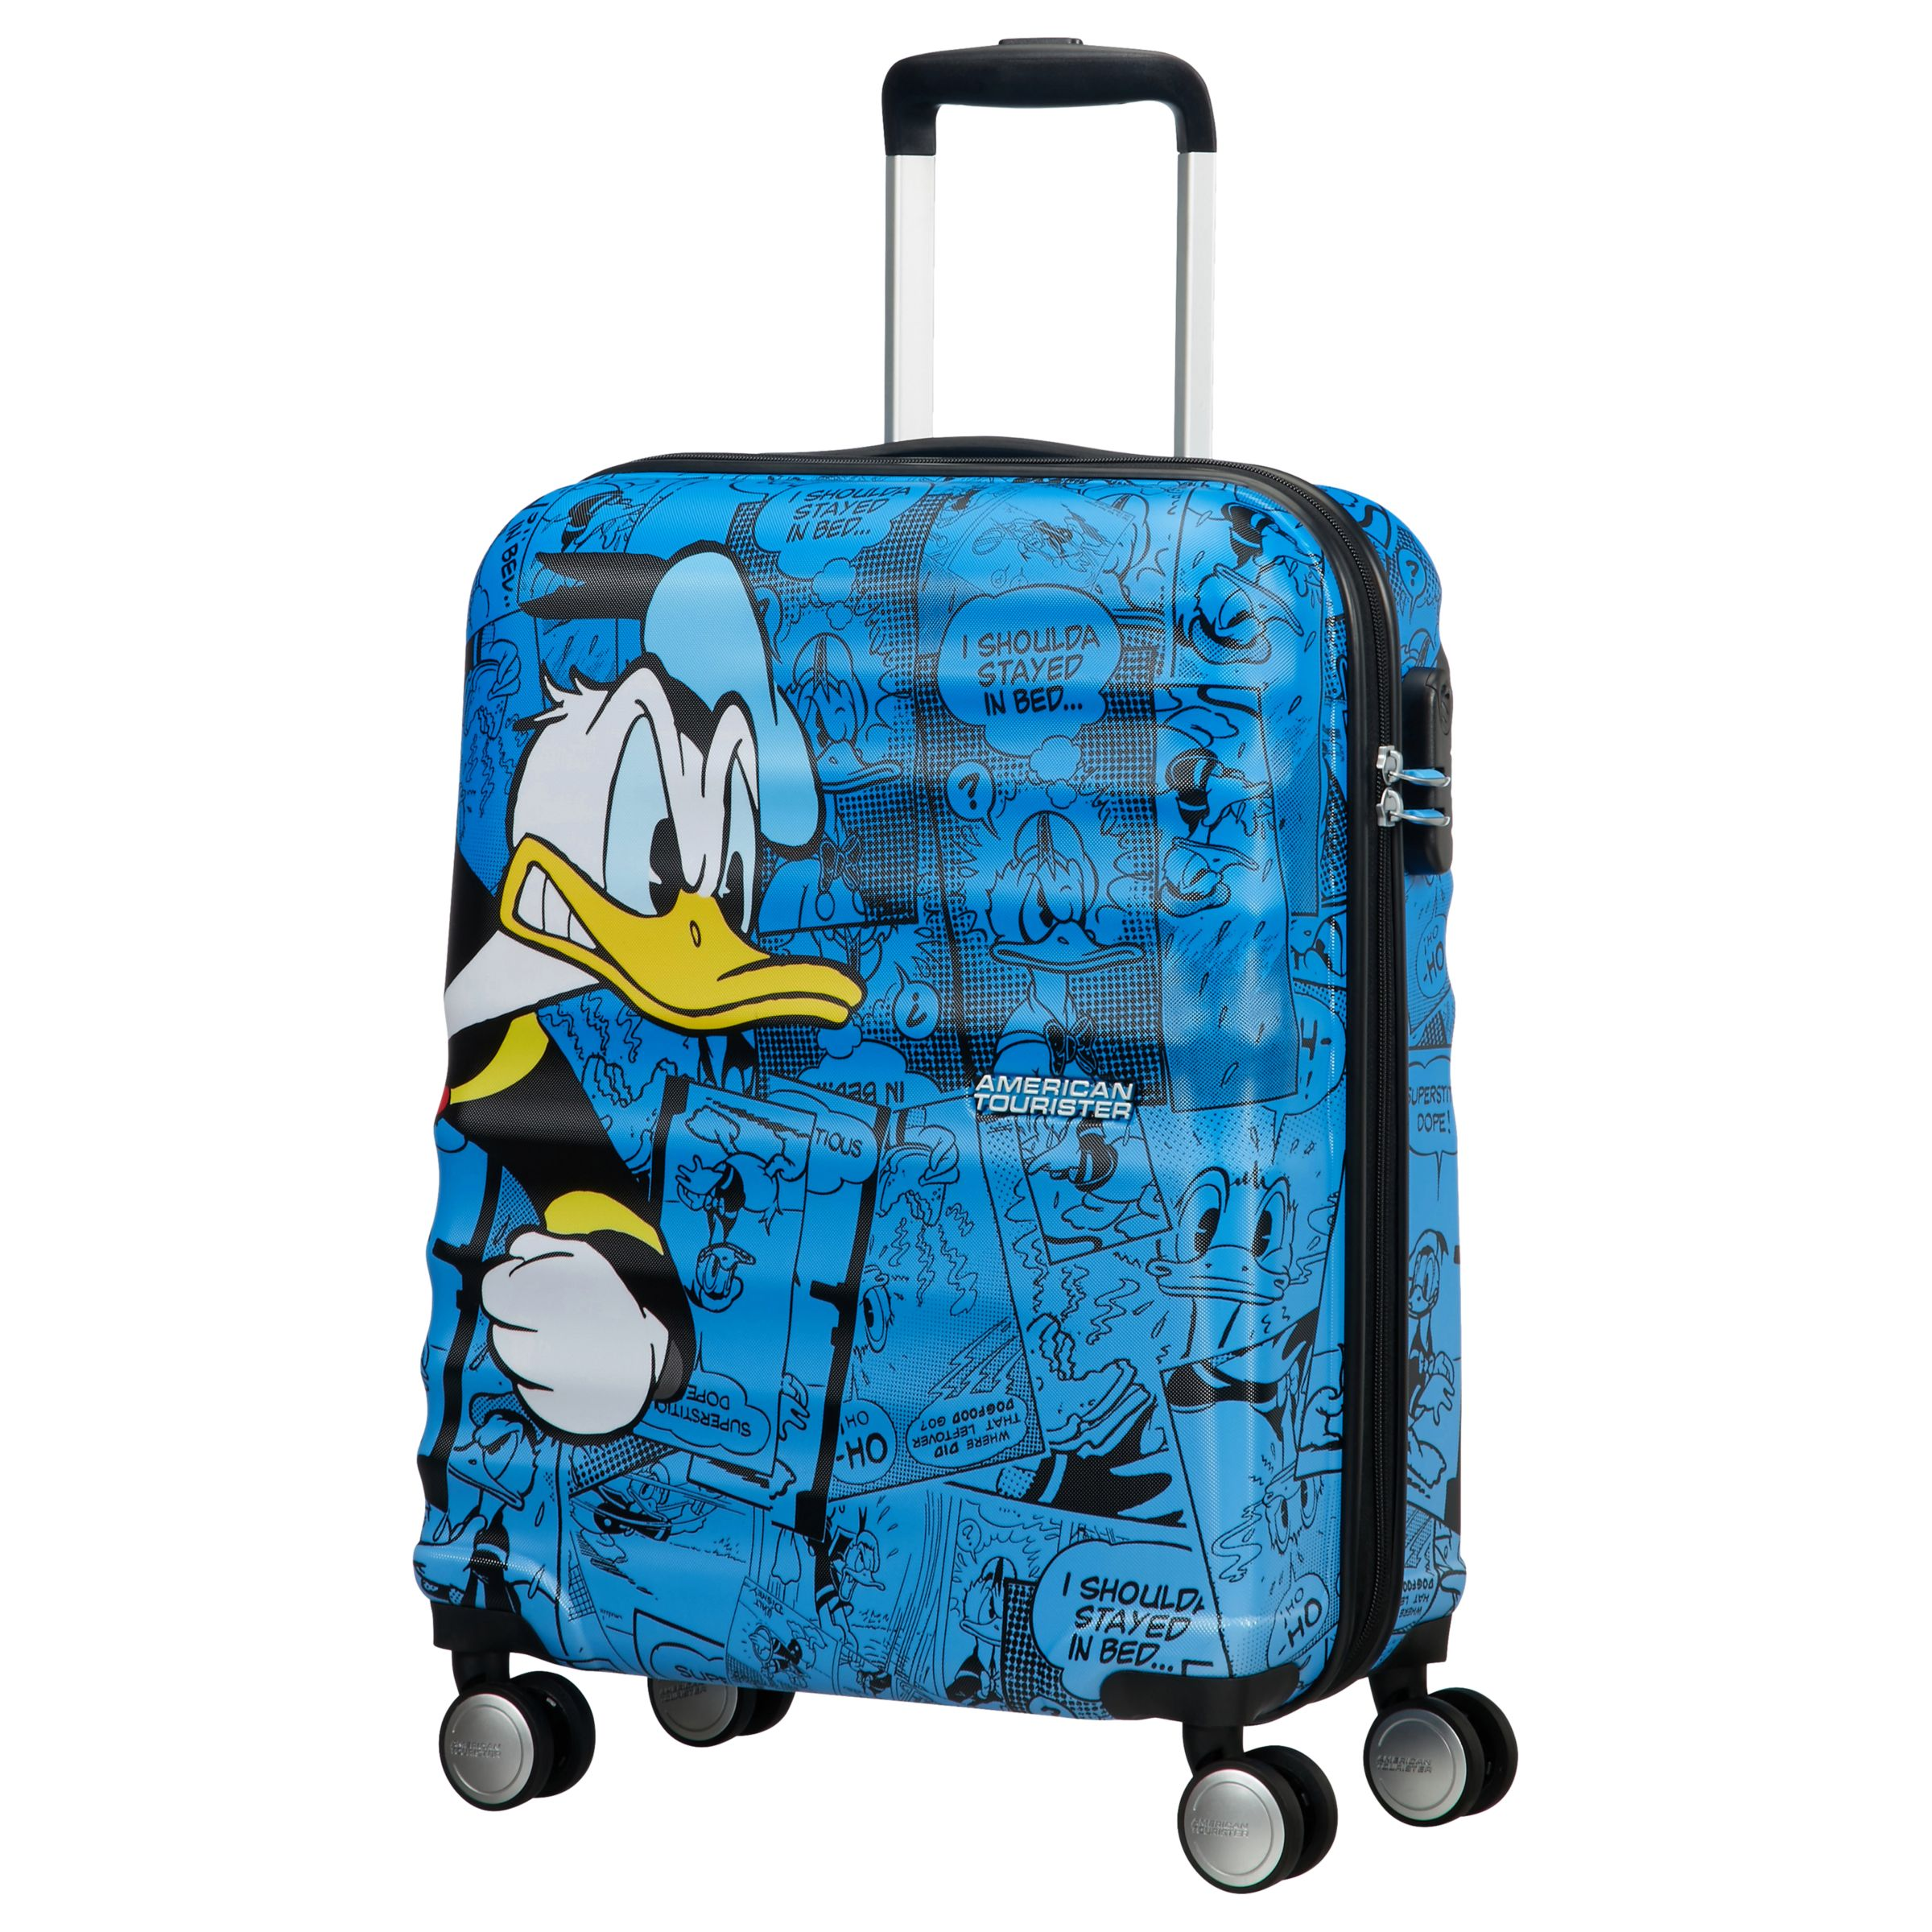 5ffa1602ad4a American Tourister Donald Duck 55cm Cabin Case, Blue at John Lewis ...